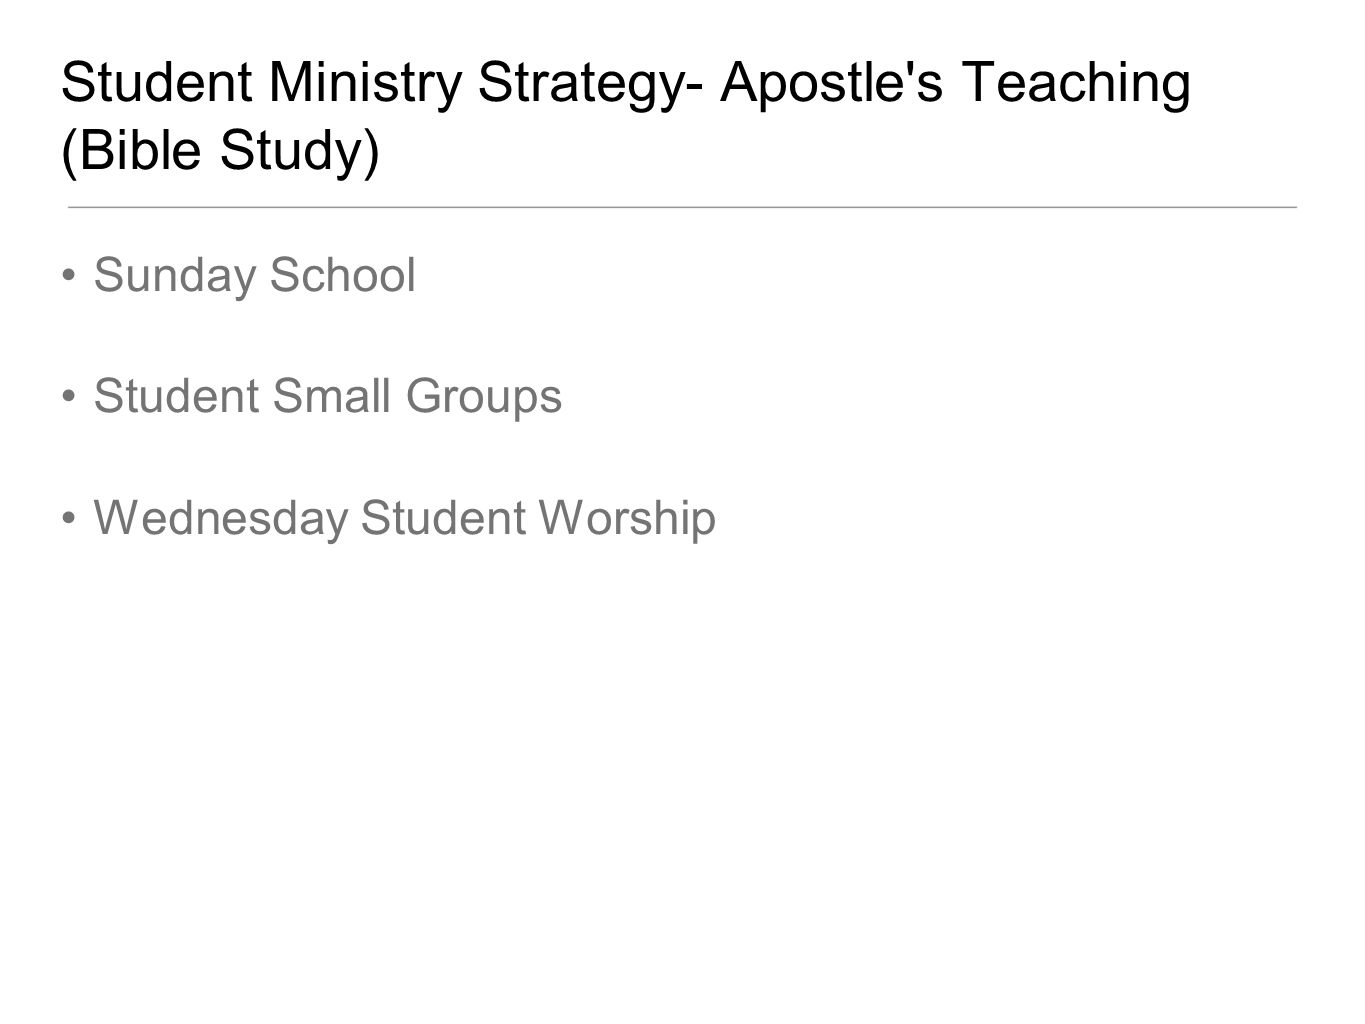 Student Ministry Strategy- Apostle s Teaching (Bible Study) Sunday School Student Small Groups Wednesday Student Worship